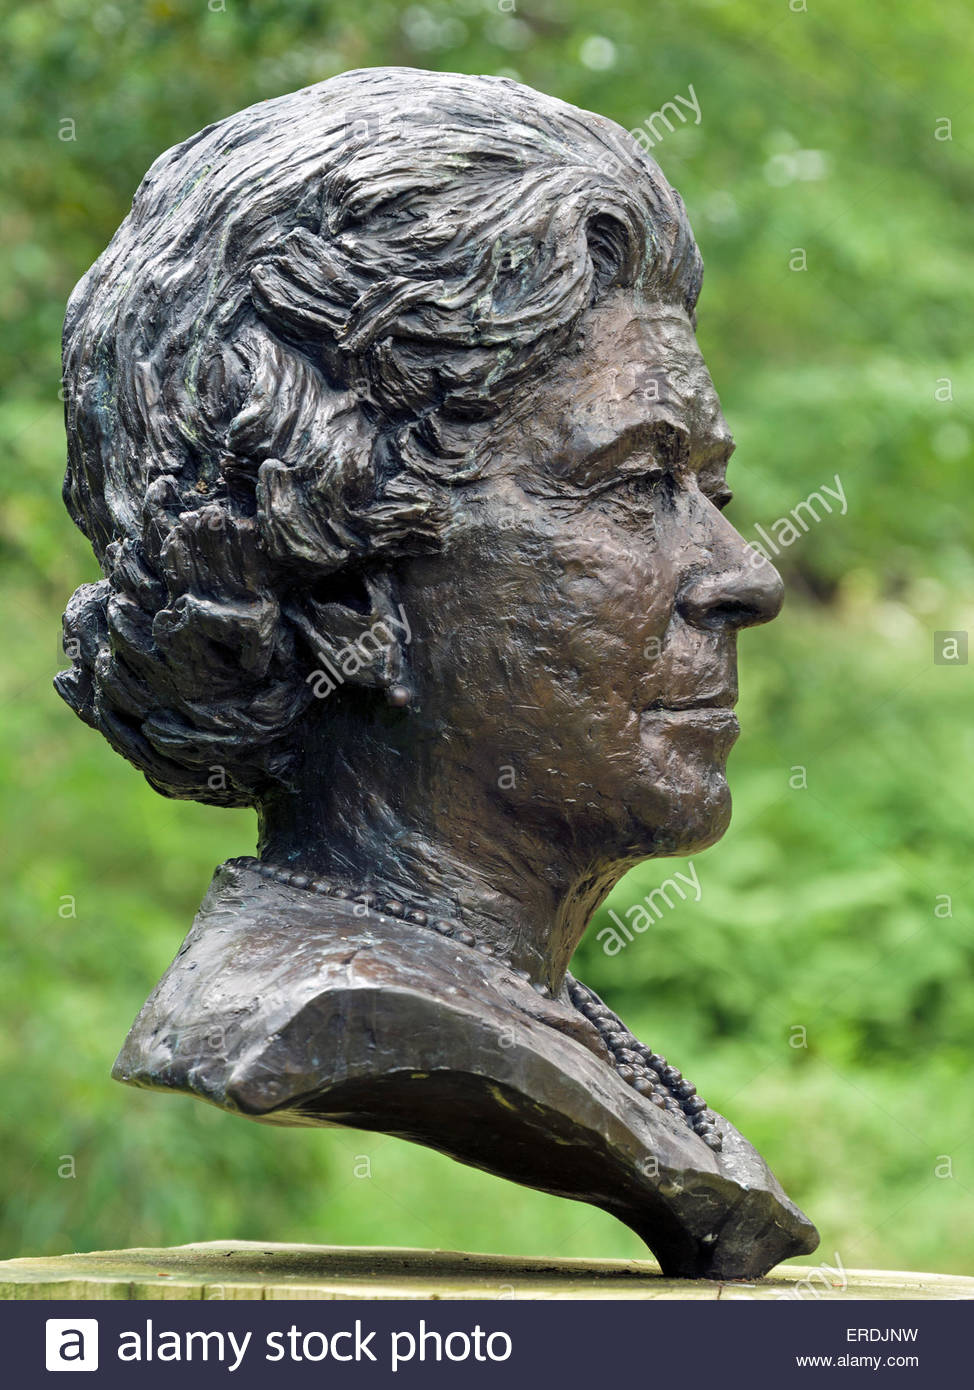 Bust sculpture of HM The Queen Elizabeth II by Angela Conner on display in Chatsworth Gardens, Derbyshire, England, UK. Stock Photo